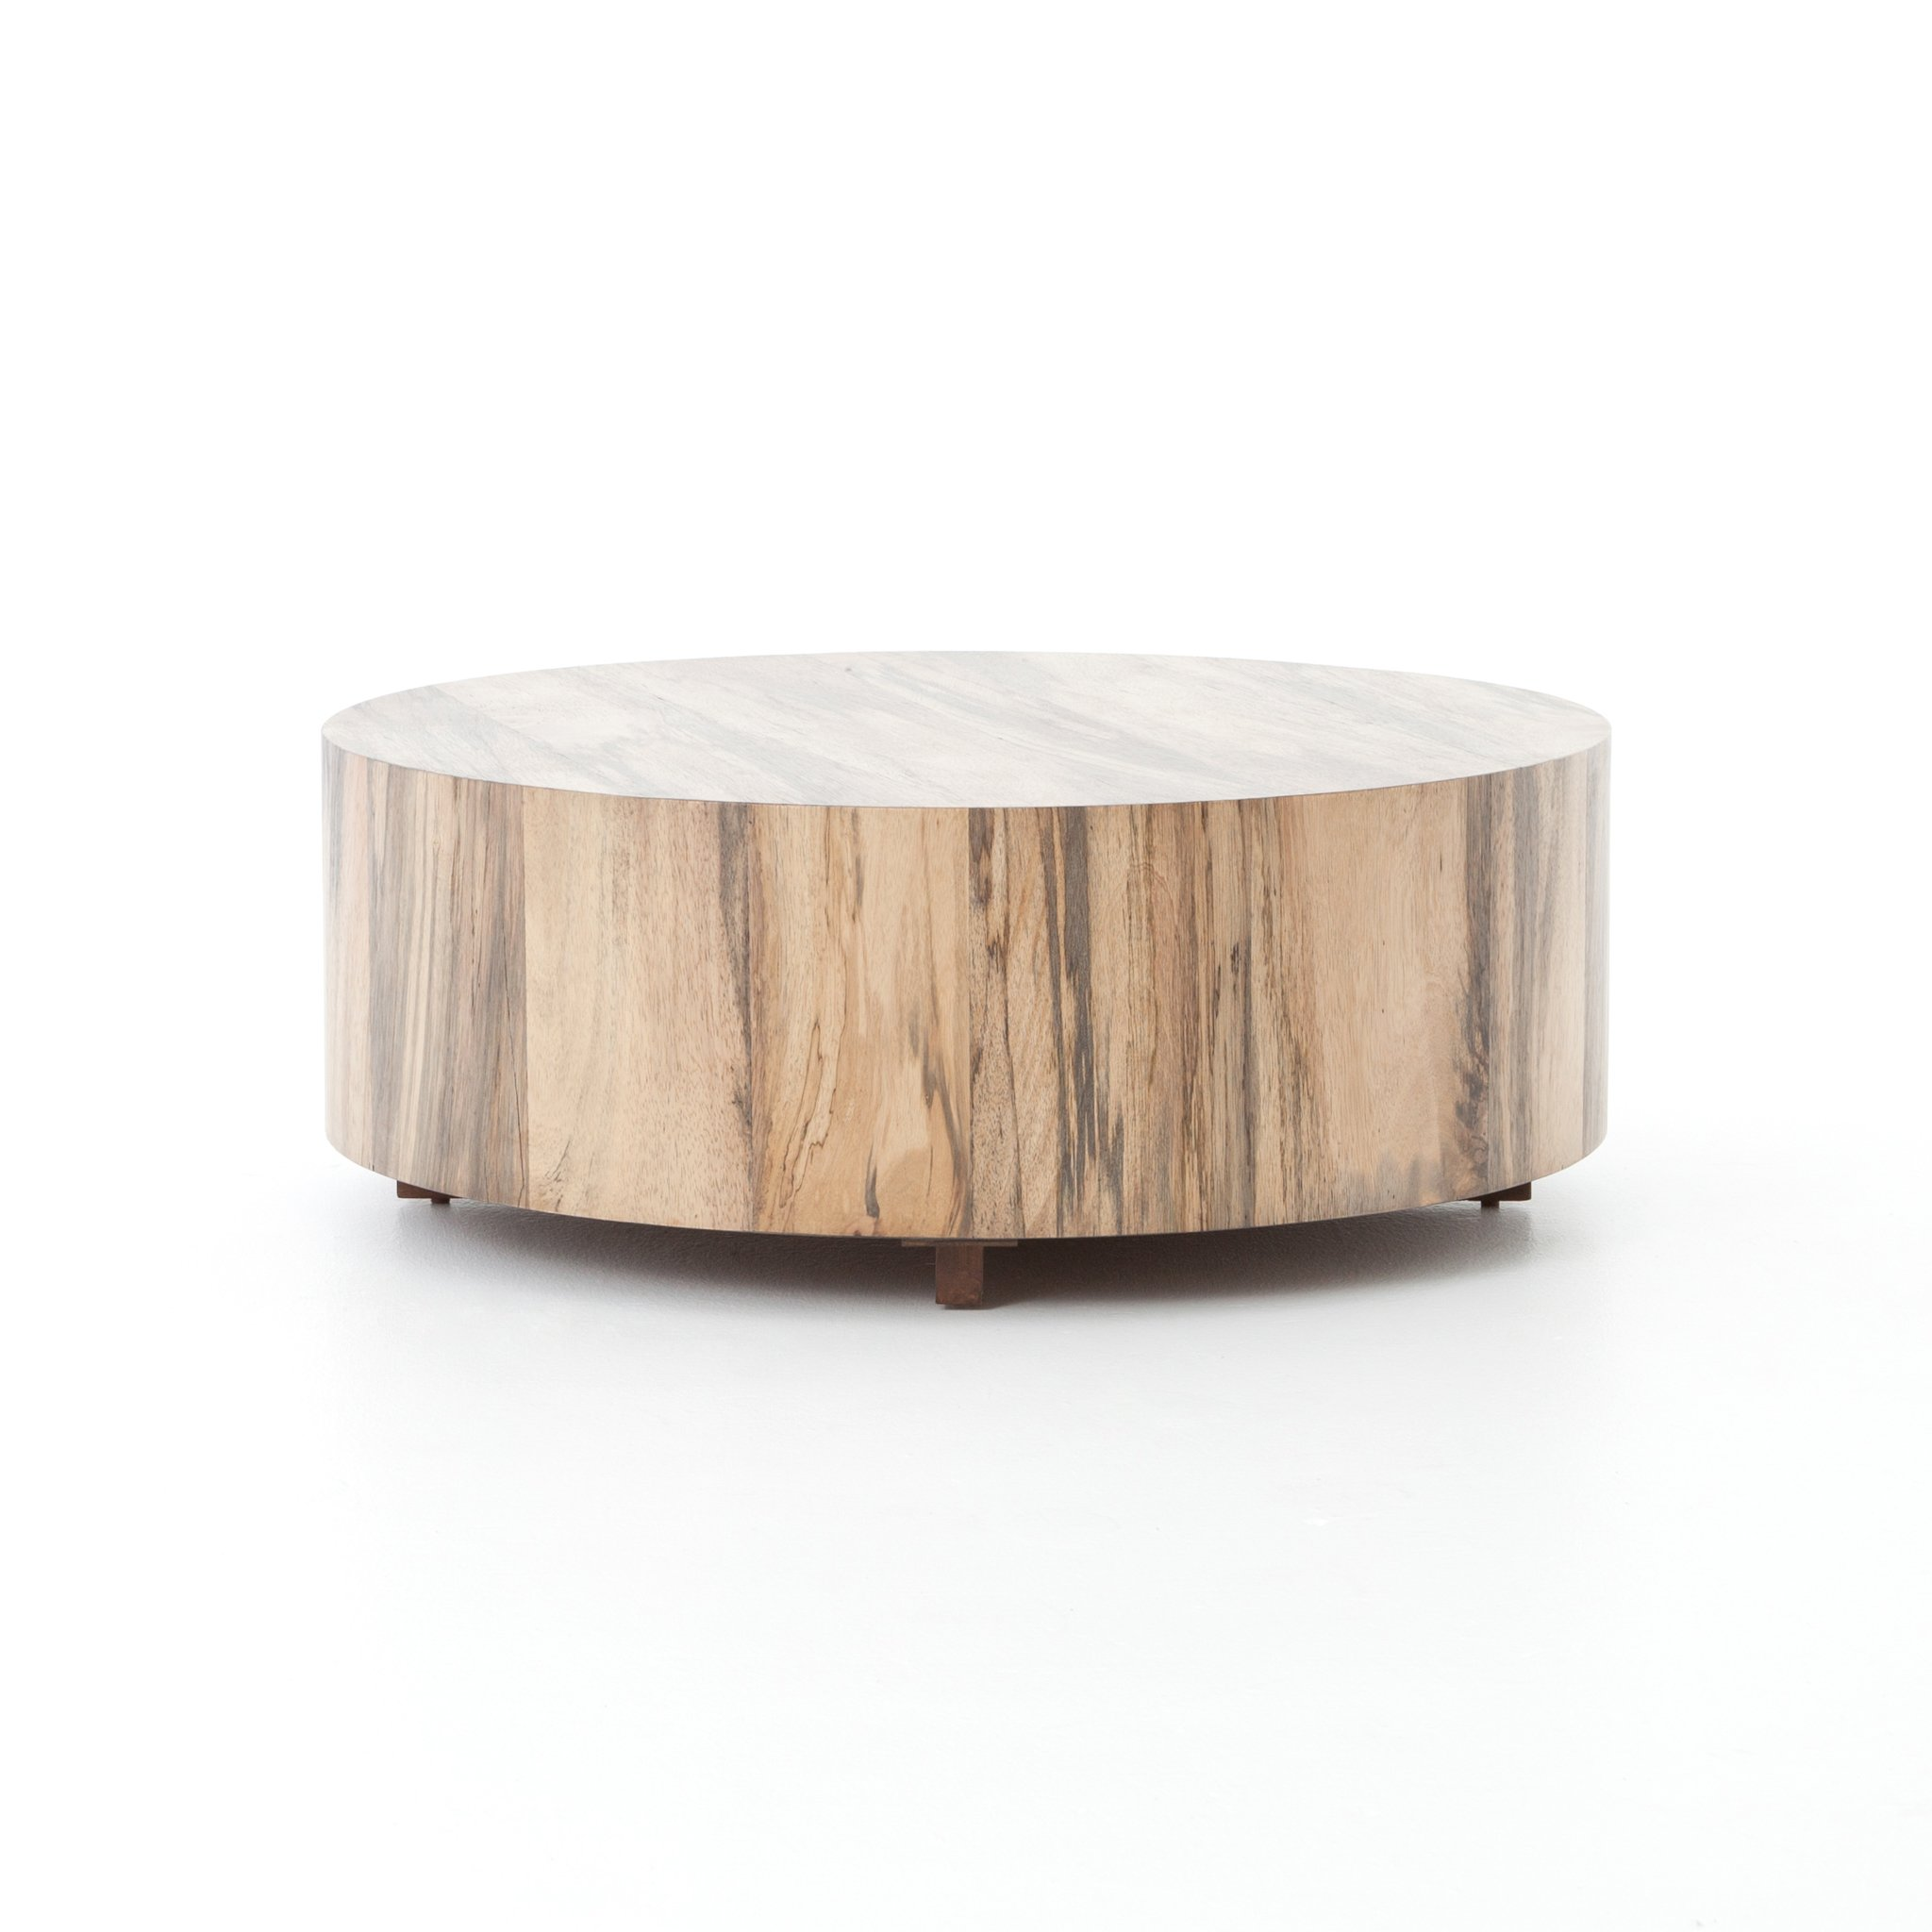 Hudson Coffee Table In Various Materials Round Coffee Table Round Wood Coffee Table Coffee Table Wood